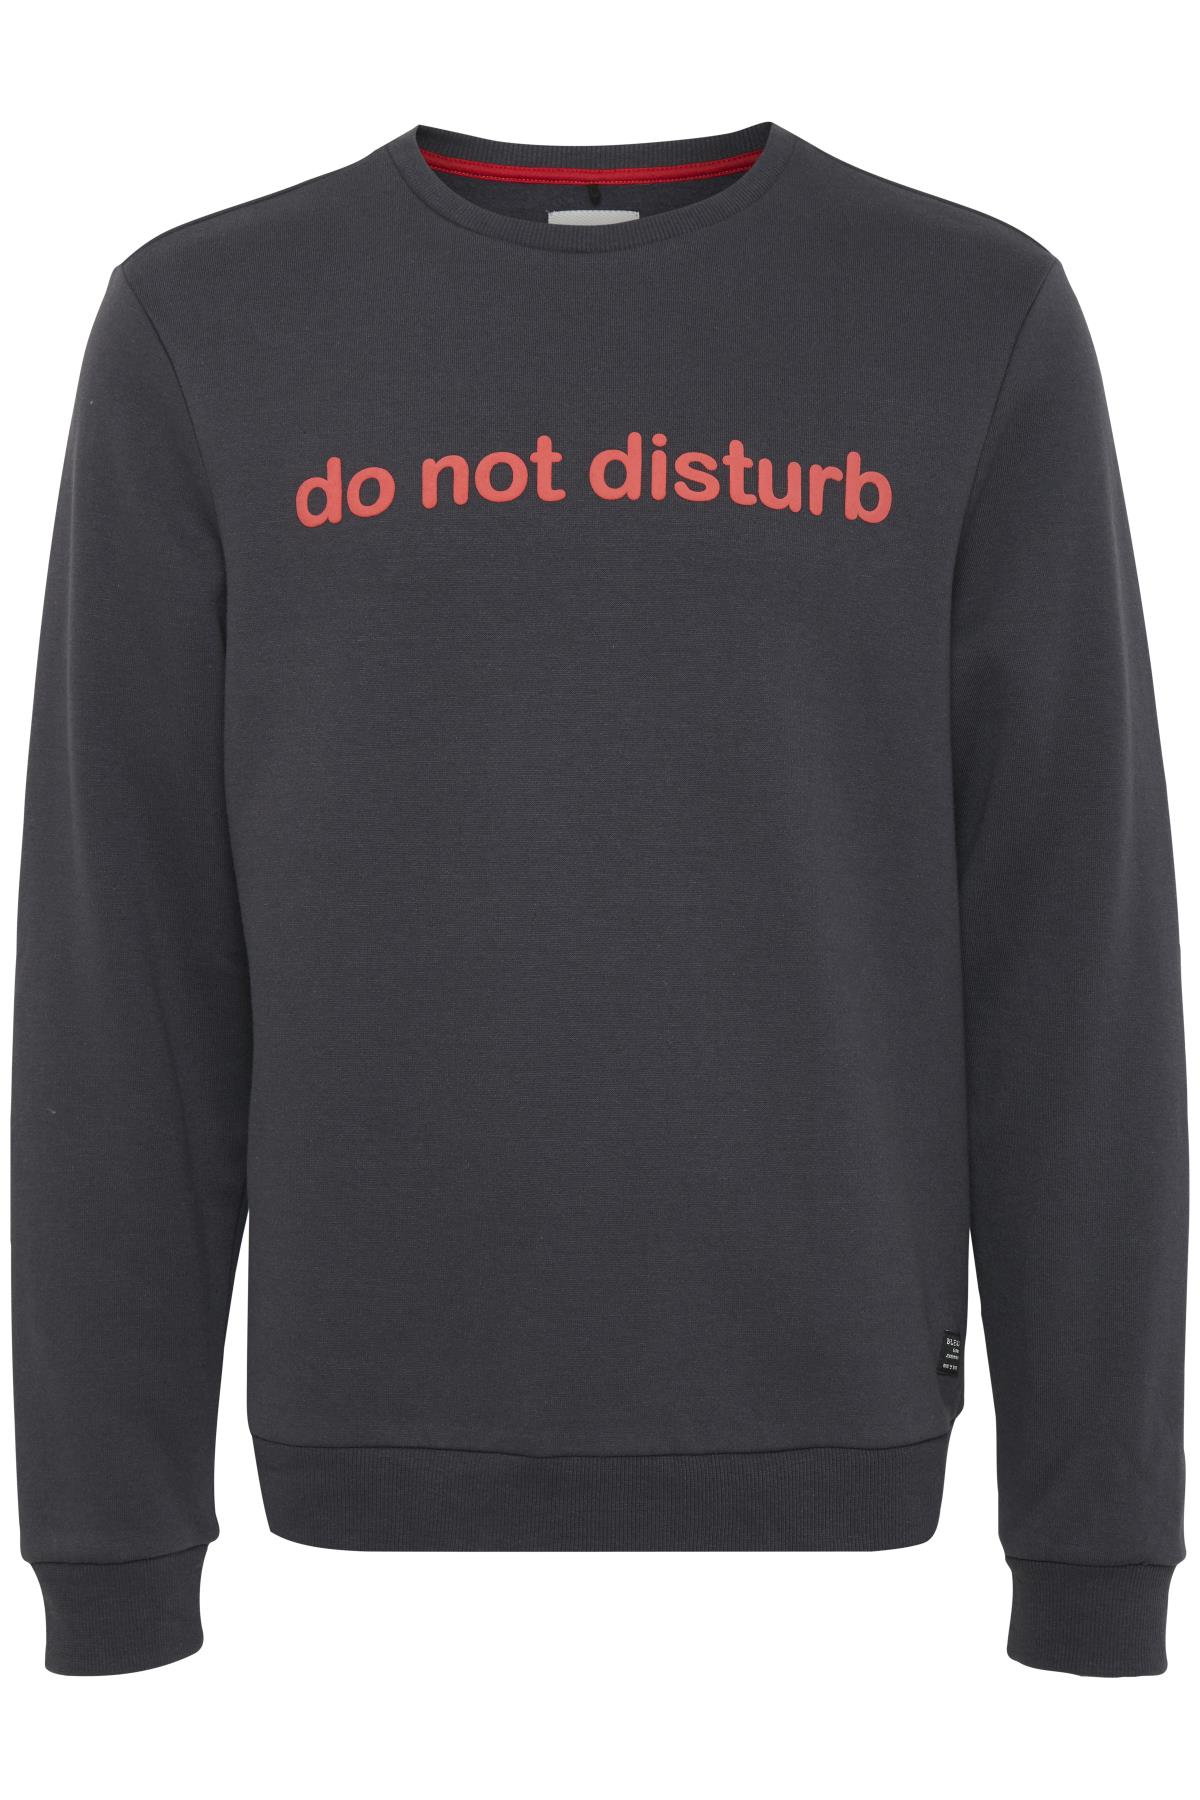 Phantom grey Sweatshirt fra Blend He – Køb Phantom grey Sweatshirt fra str. S-XXL her